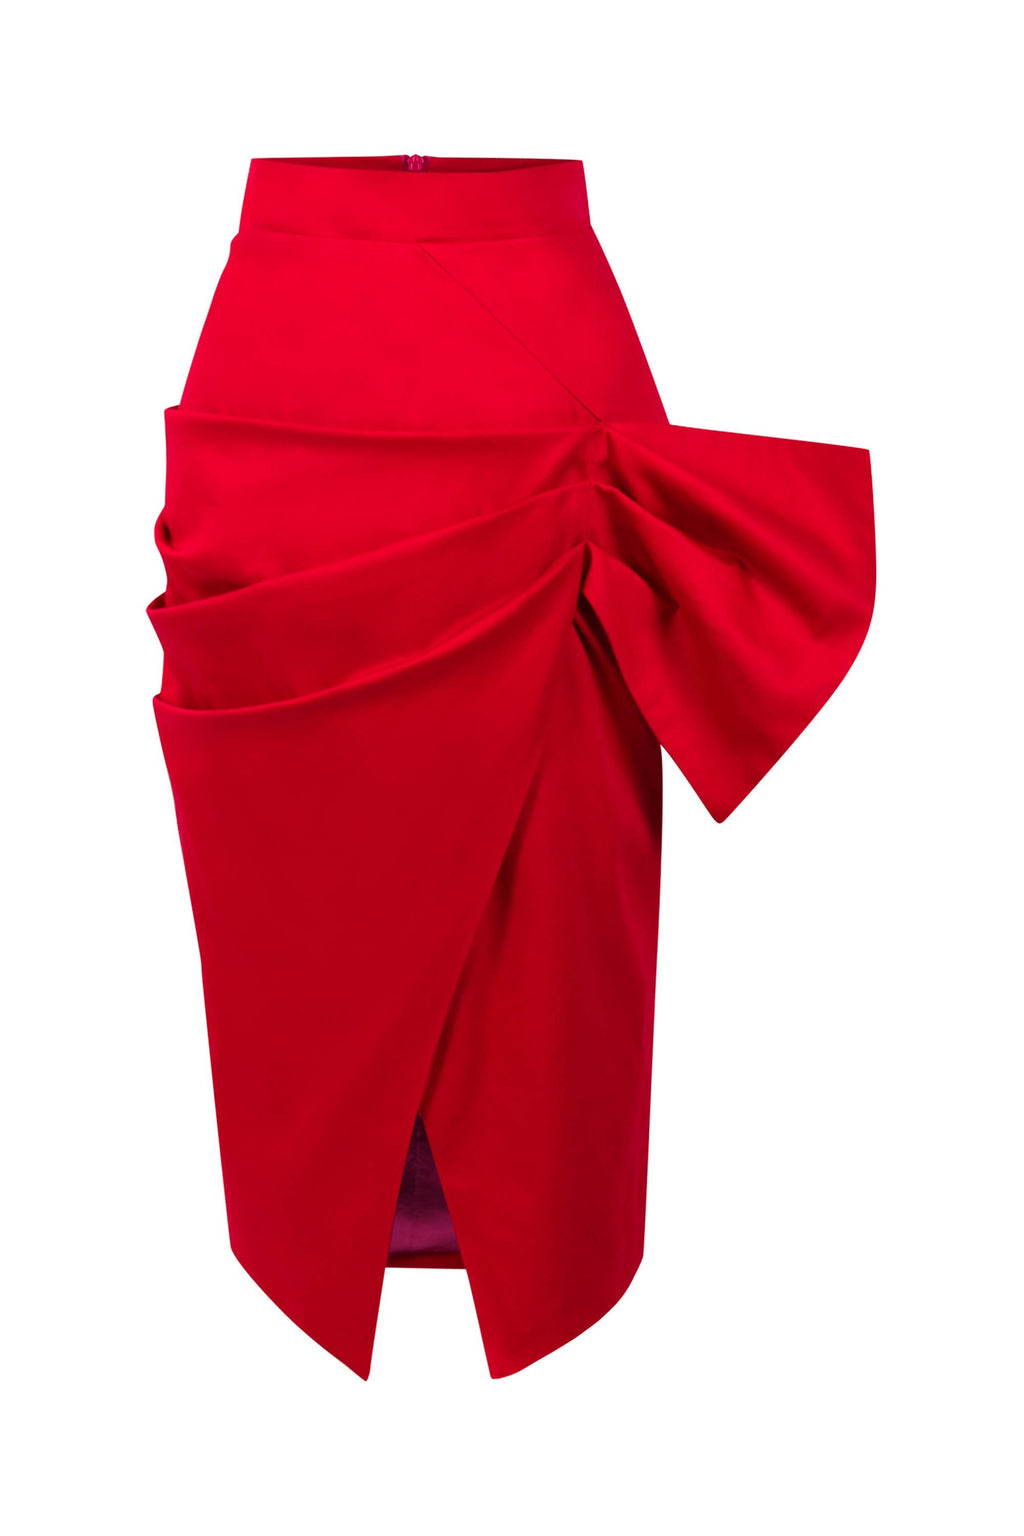 Glam Leisure Bodycon Wrap Midi Skirt - Red - Tia Dorraine London